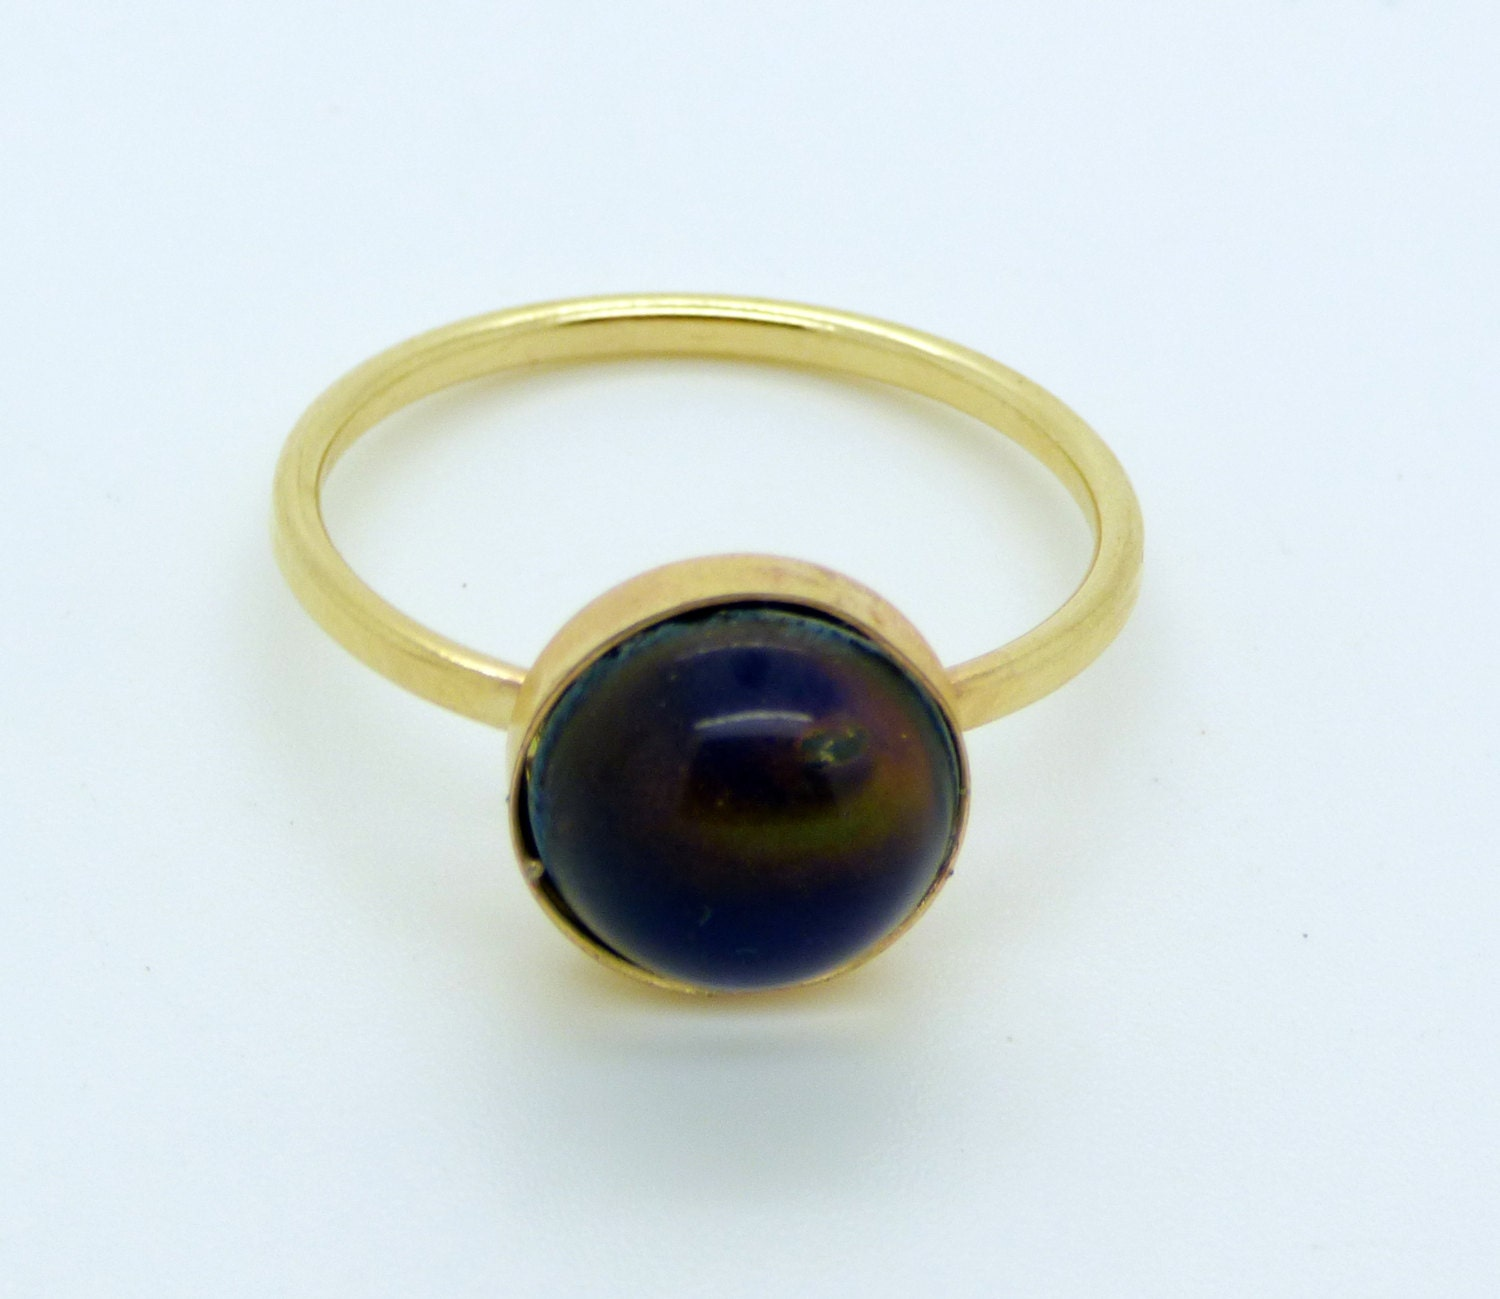 oval mood ring 14k gold filled setting size 8 5